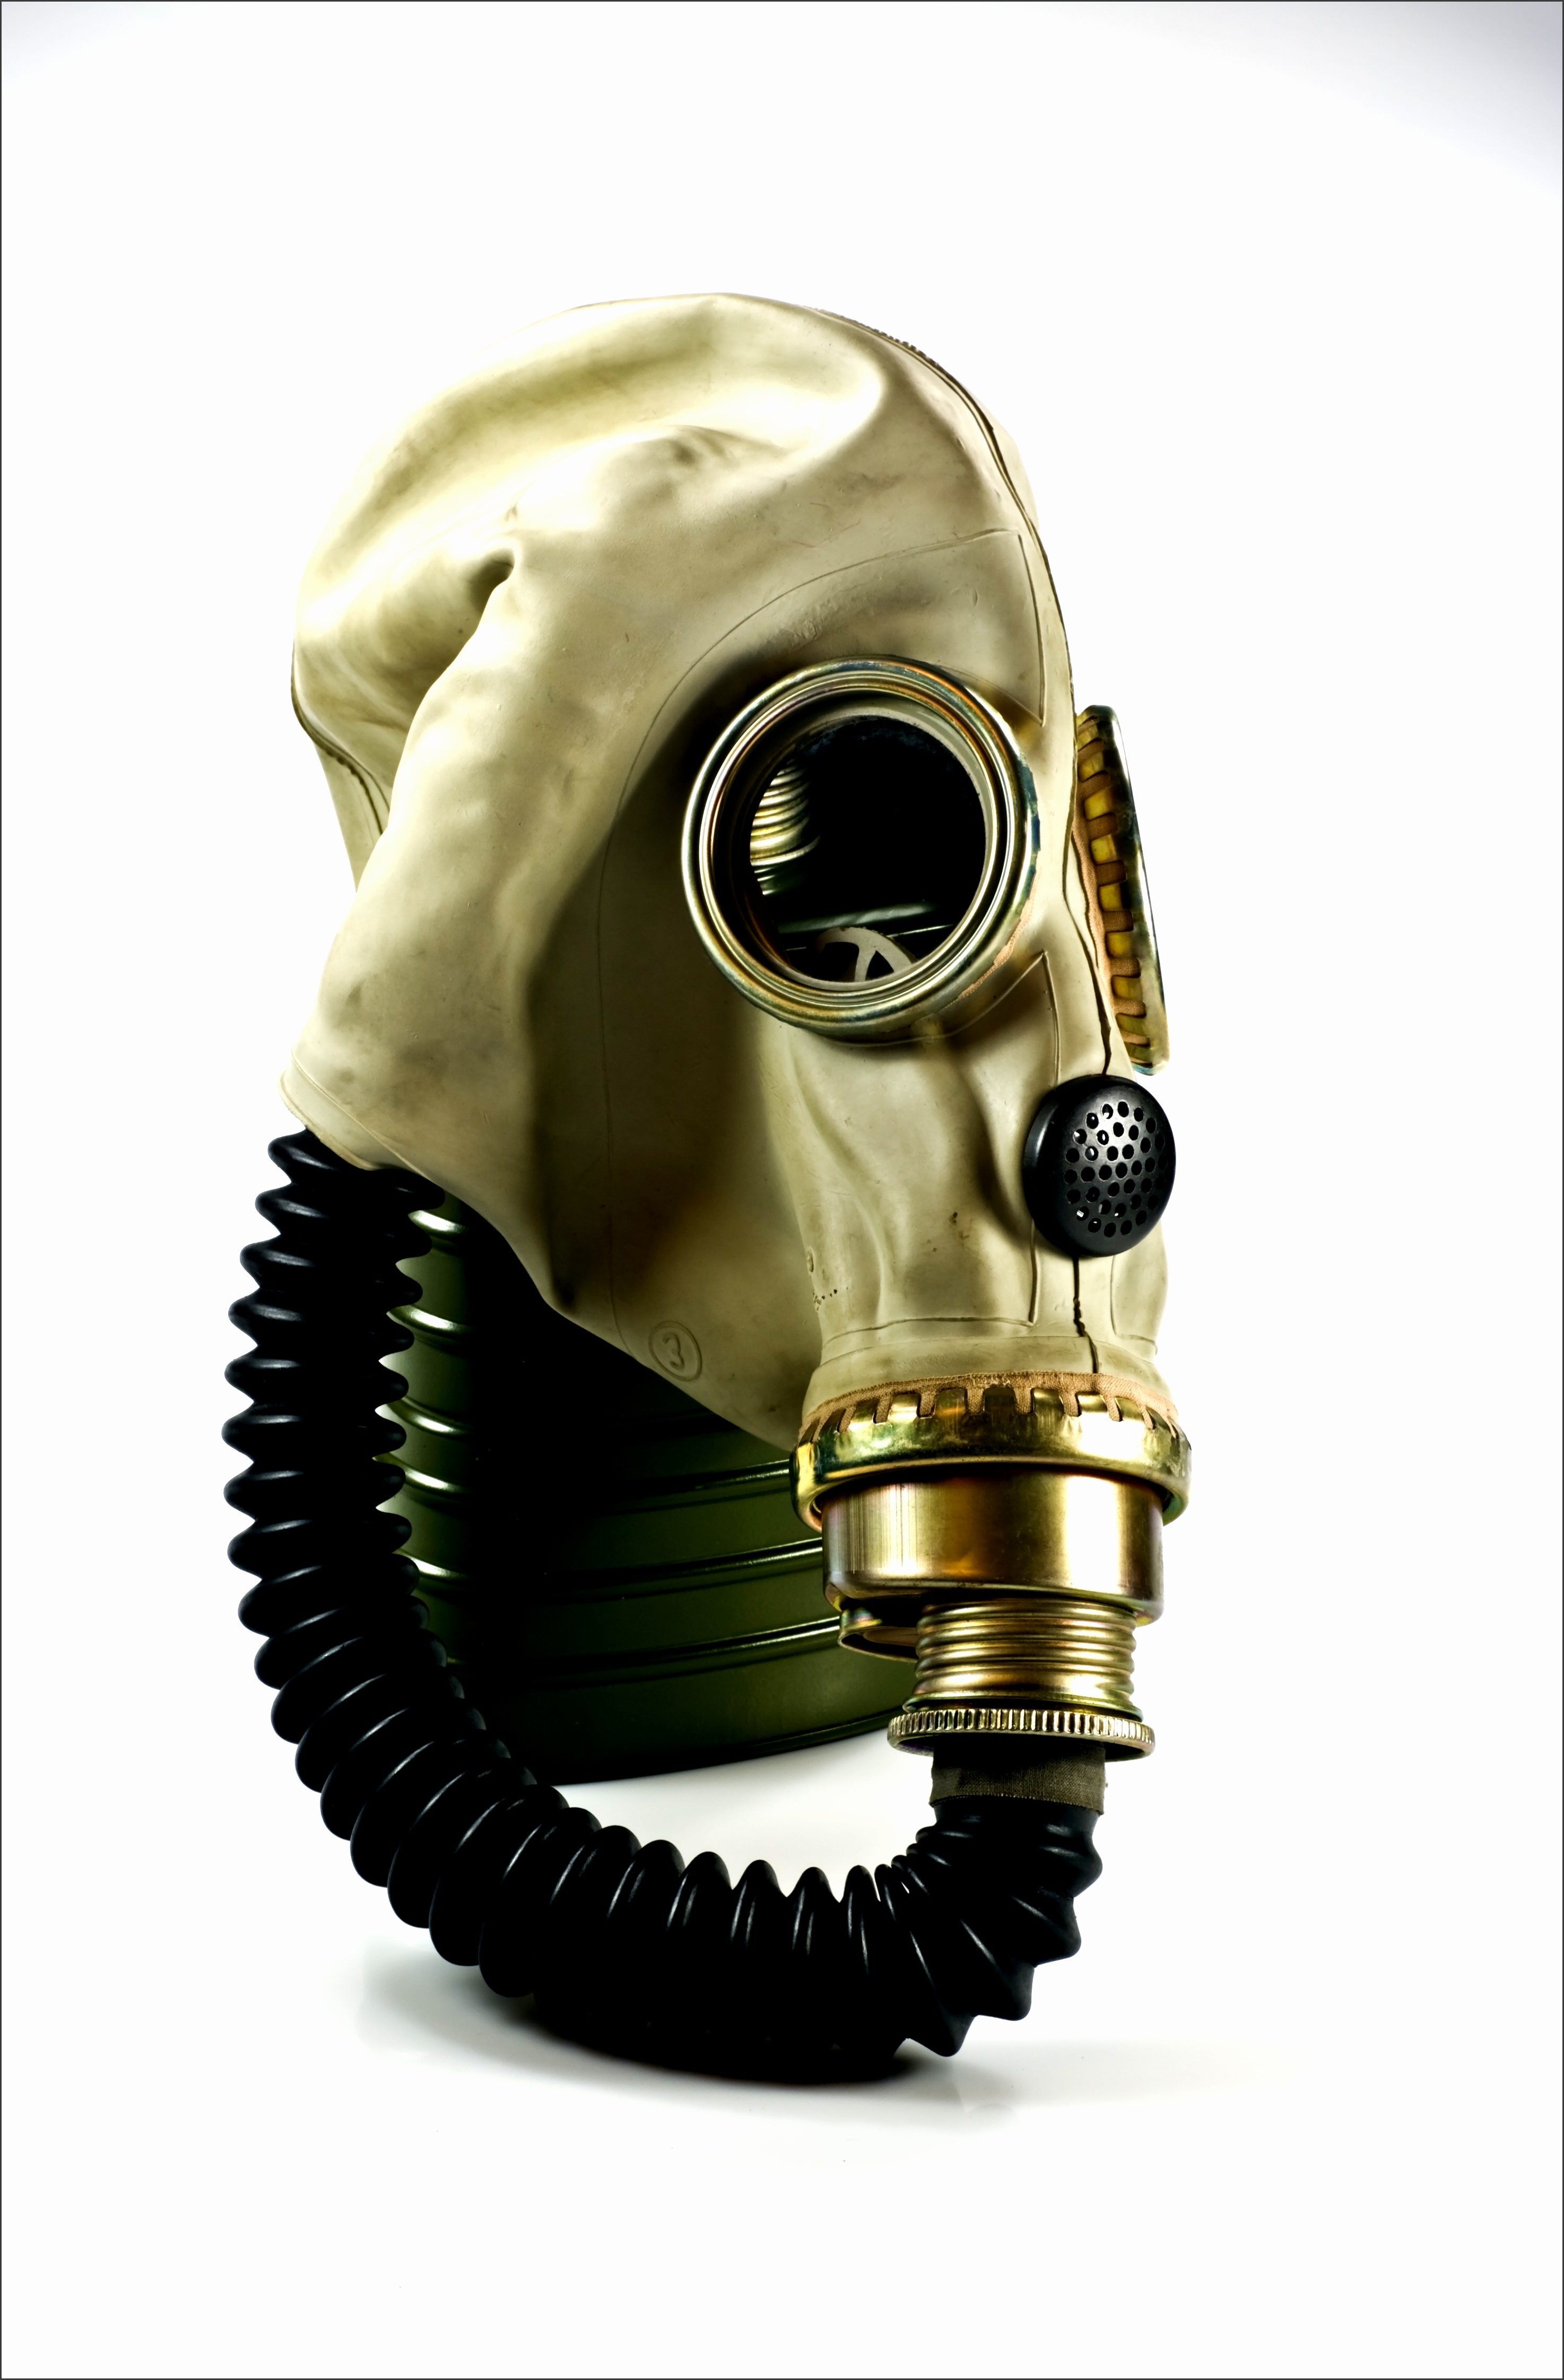 A Polish MUA gas mask used in the 1970s and 1980s